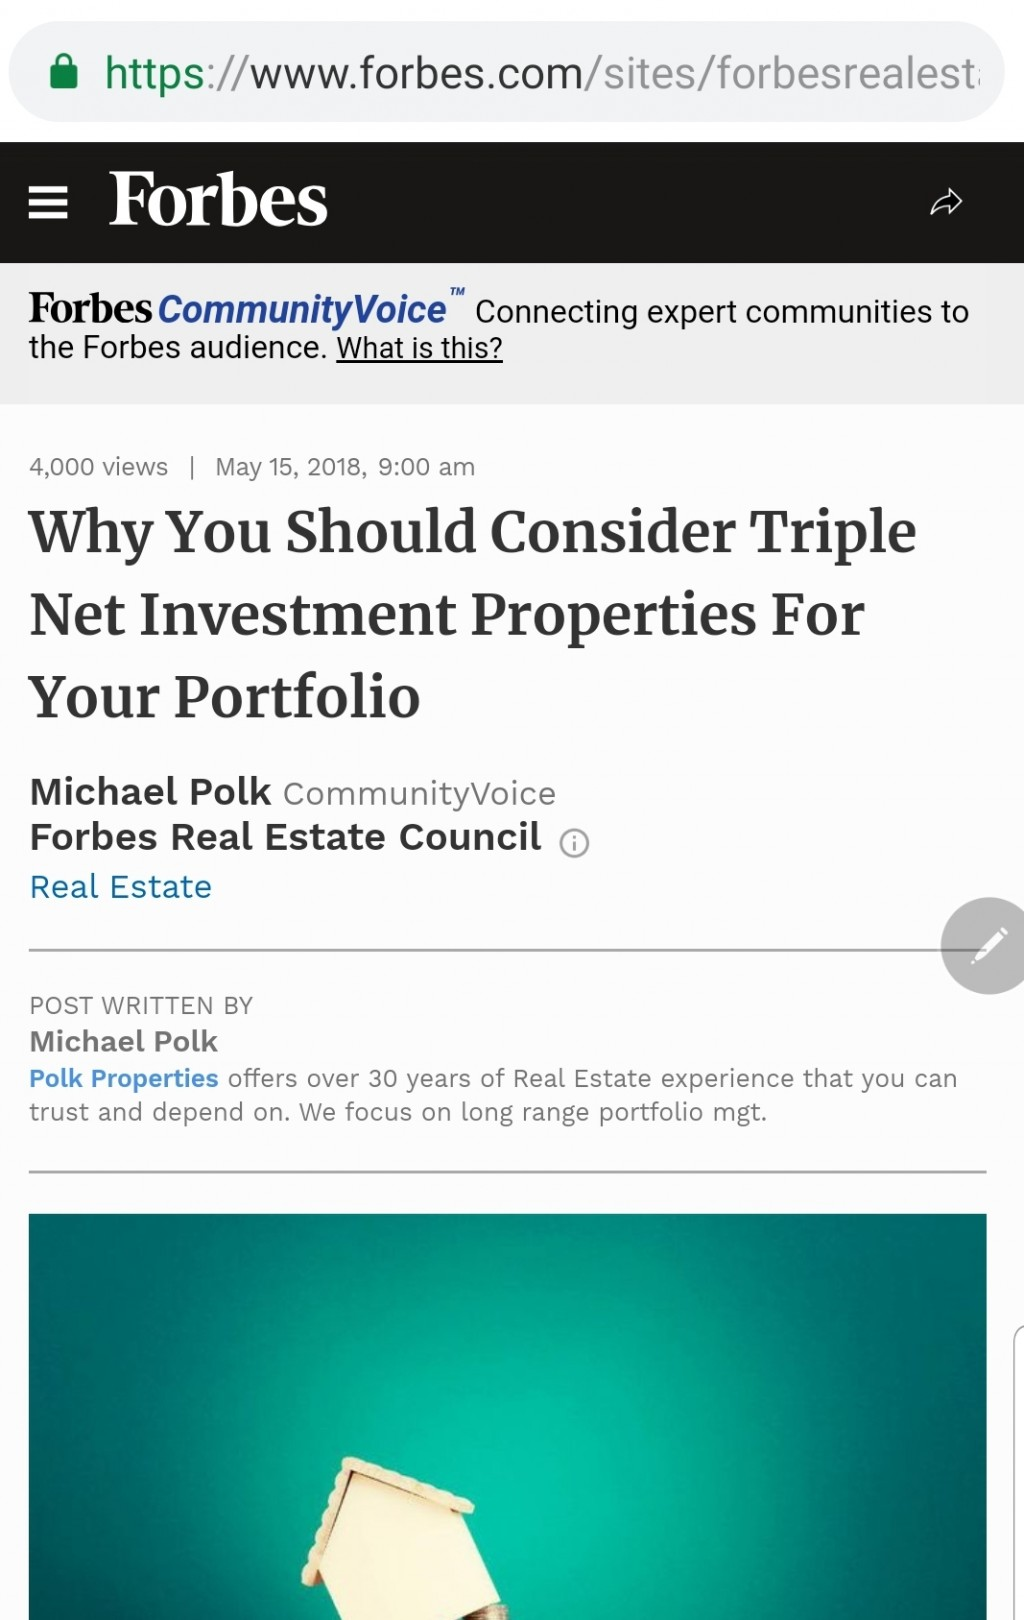 Forbescom Article Landing Page